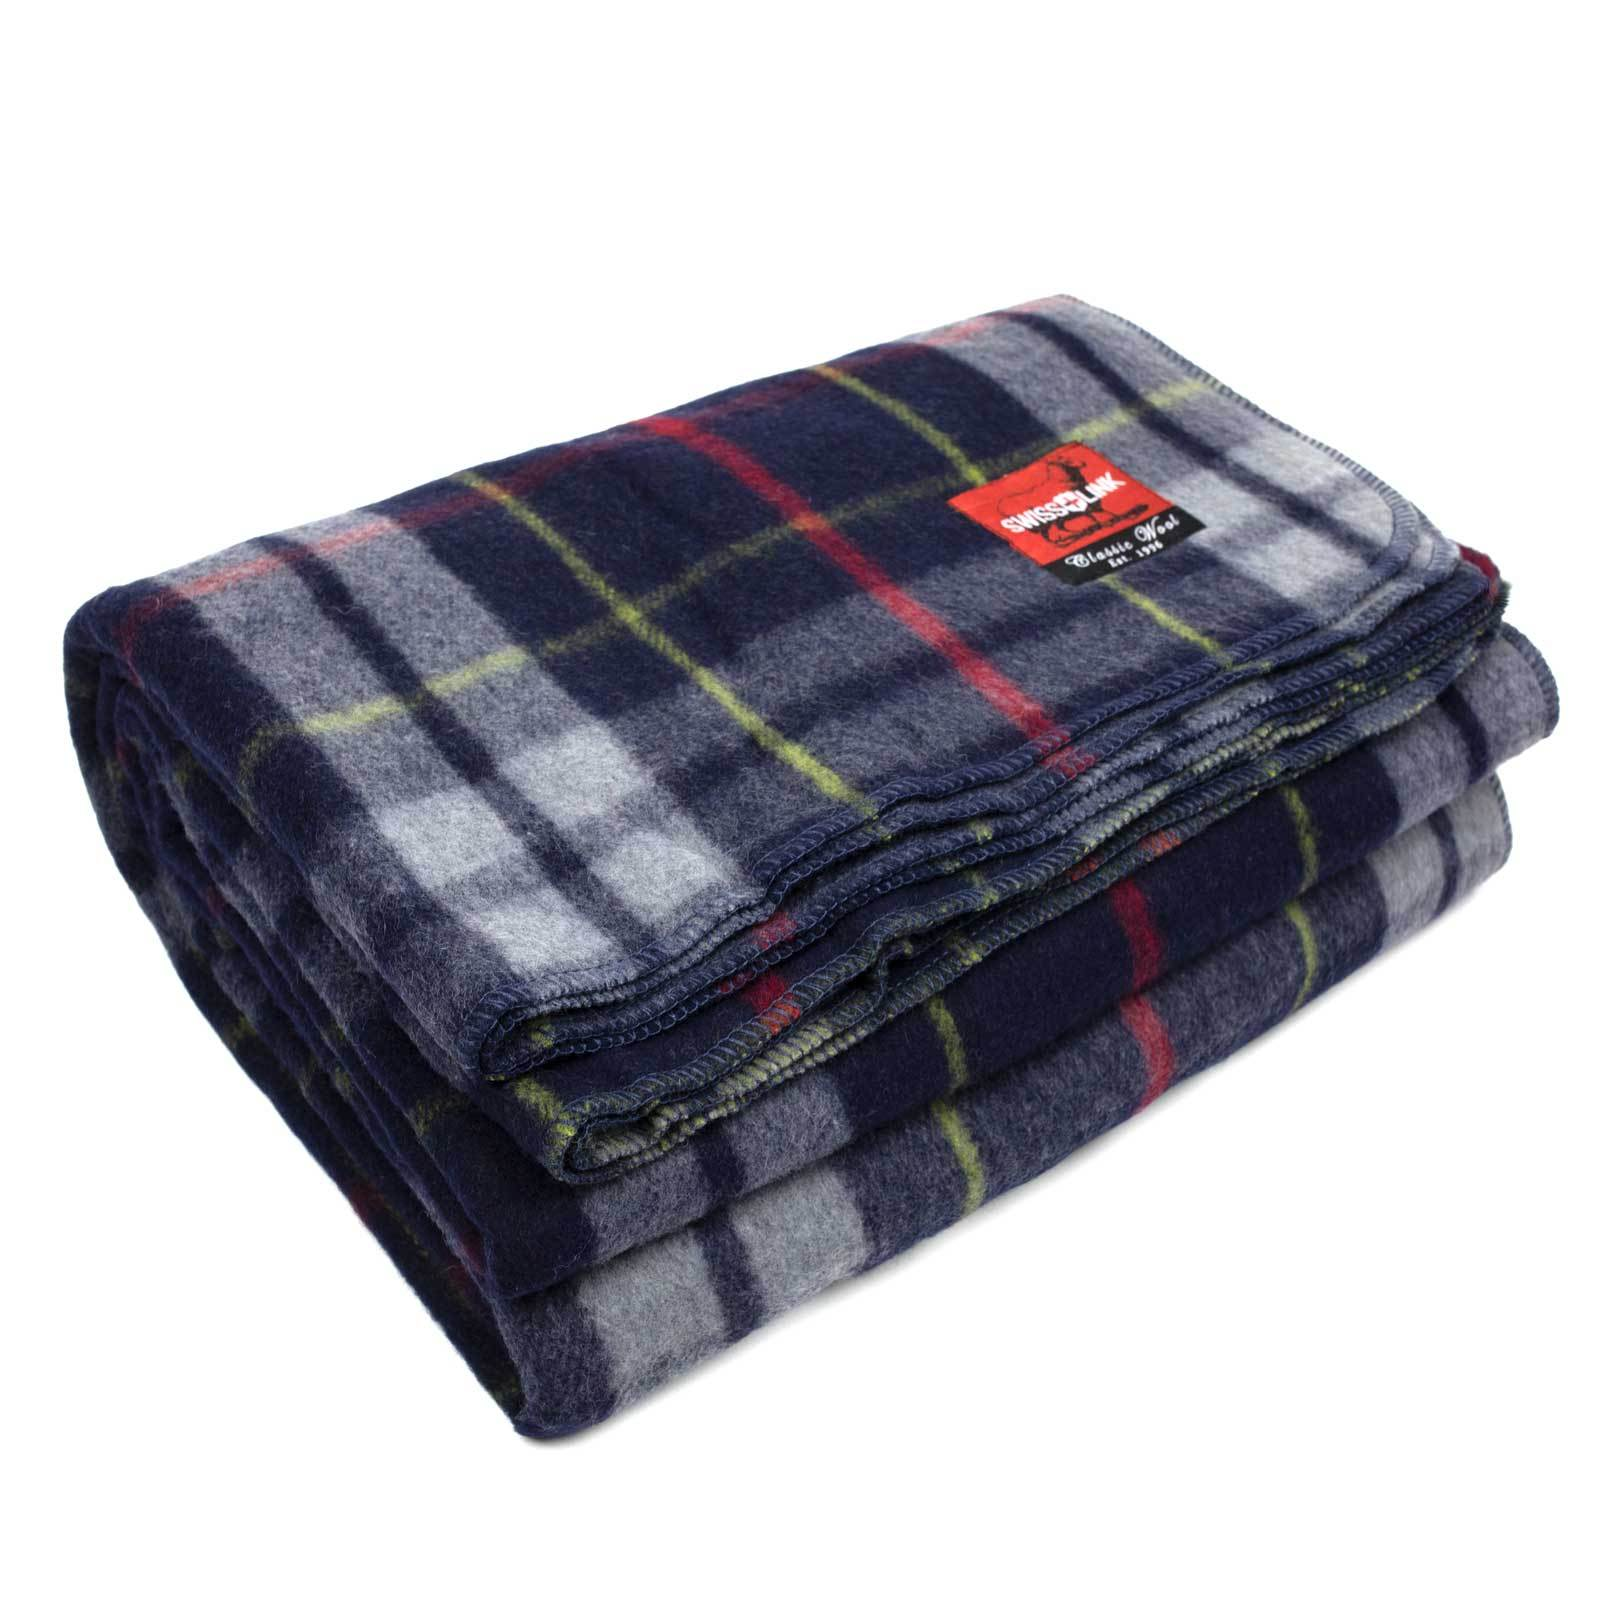 Swisslink Classic Wool Plaid Blanket - Five different Patterns 80% wool